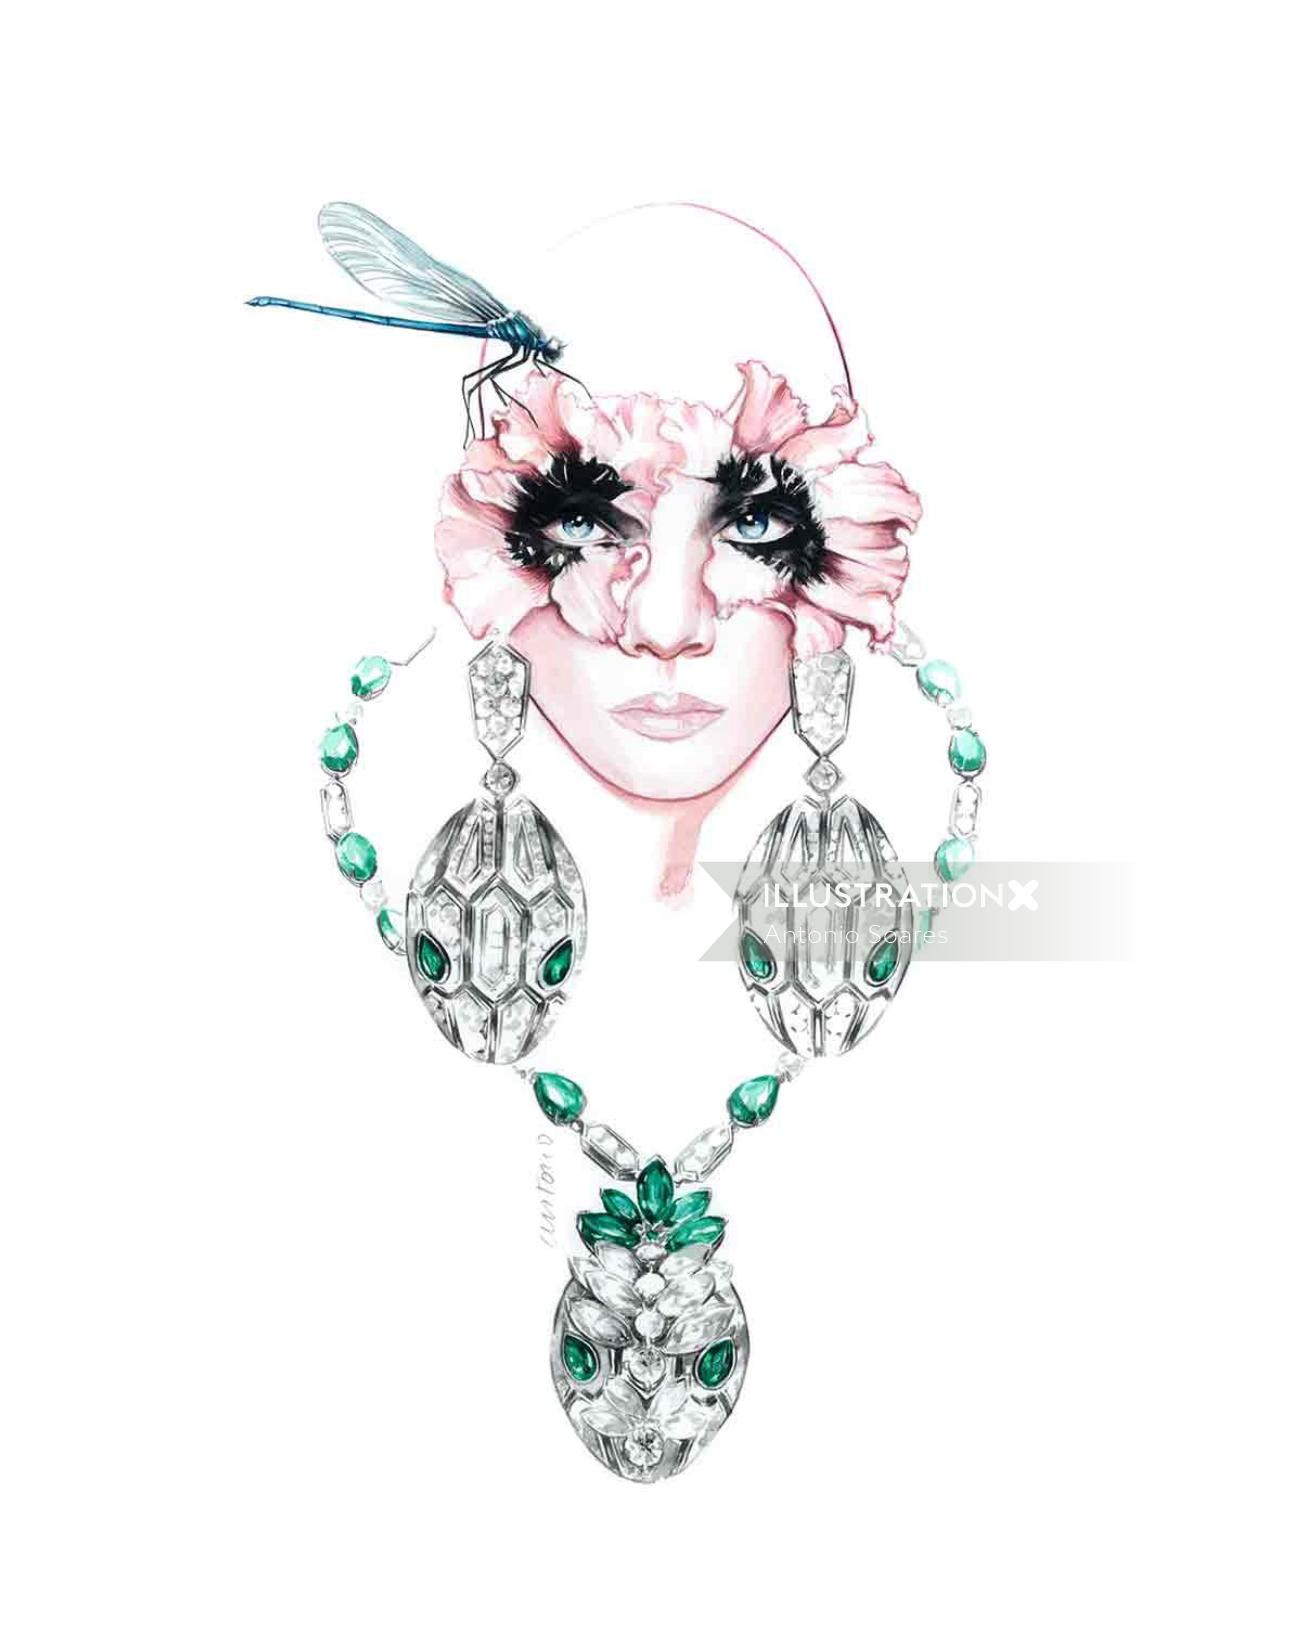 Fashion jewellery with green stones